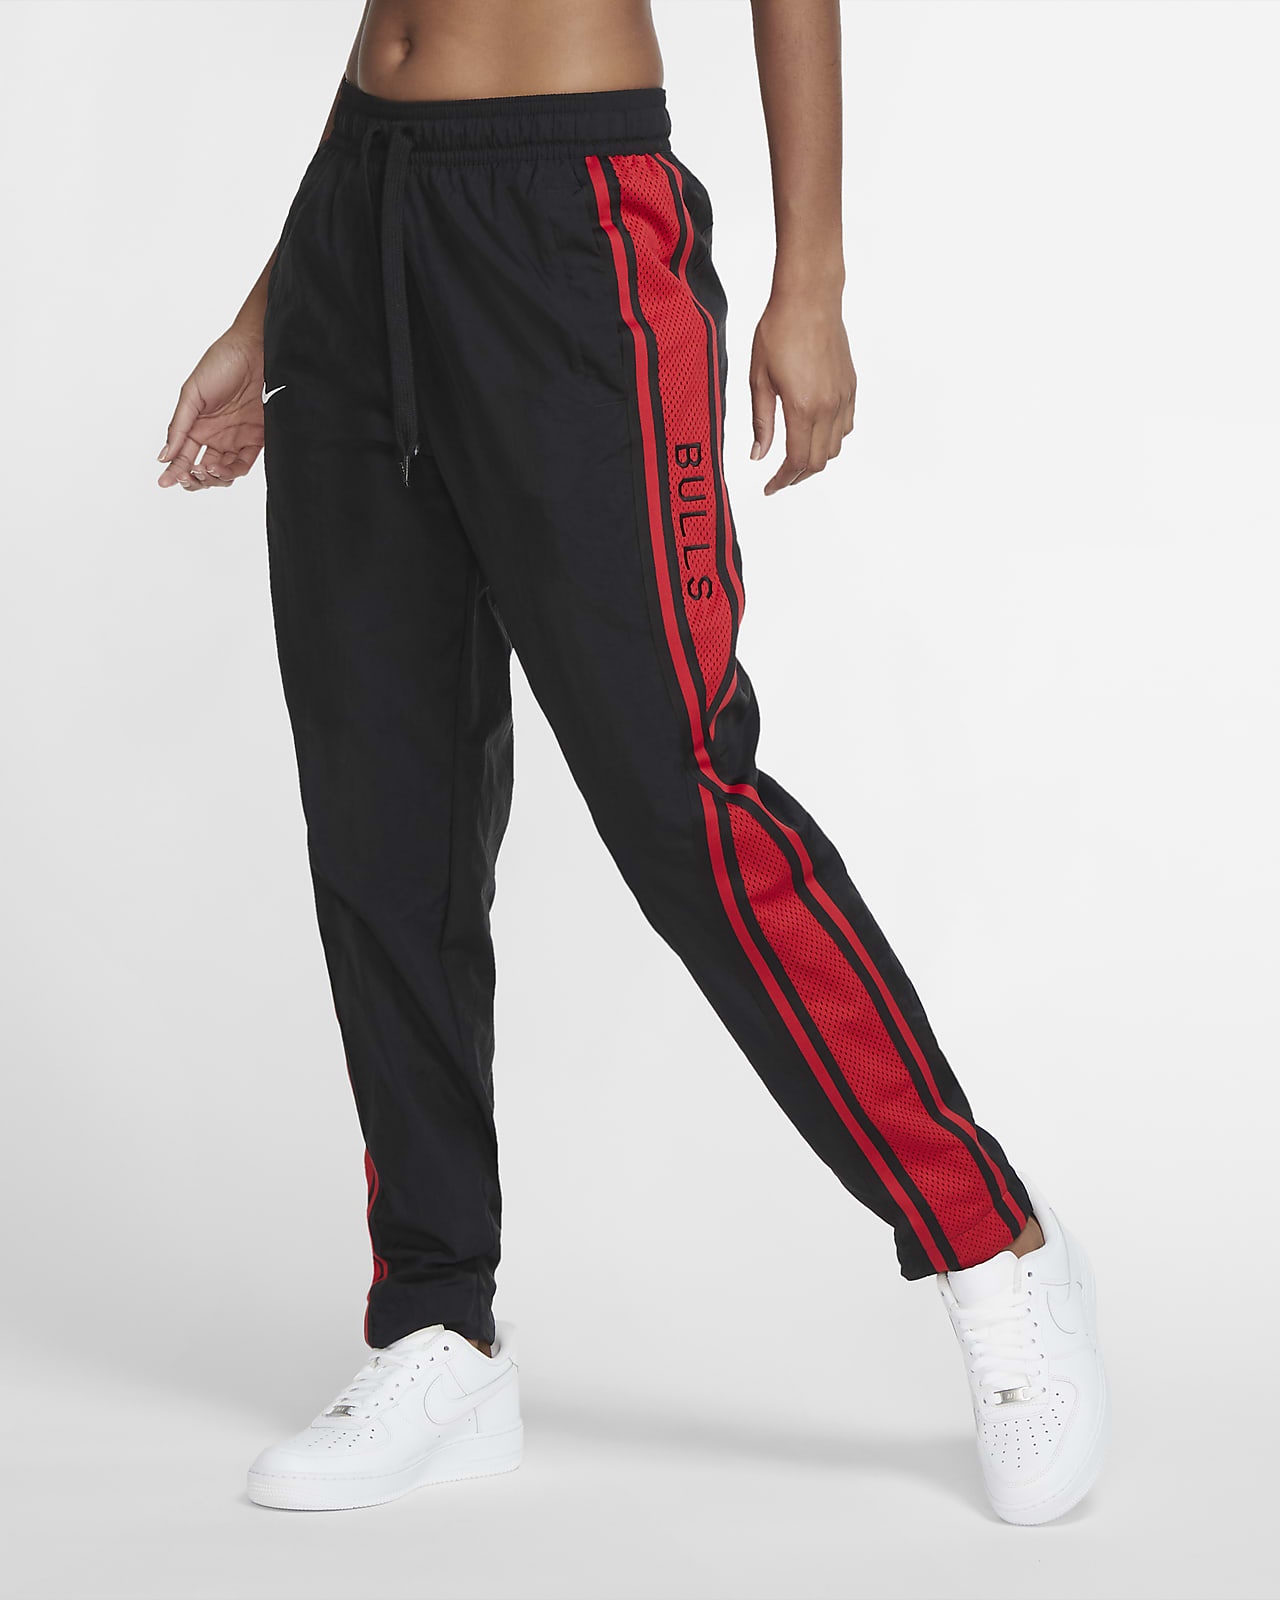 Chicago Bulls Courtside Women's Nike NBA Tracksuit Pants